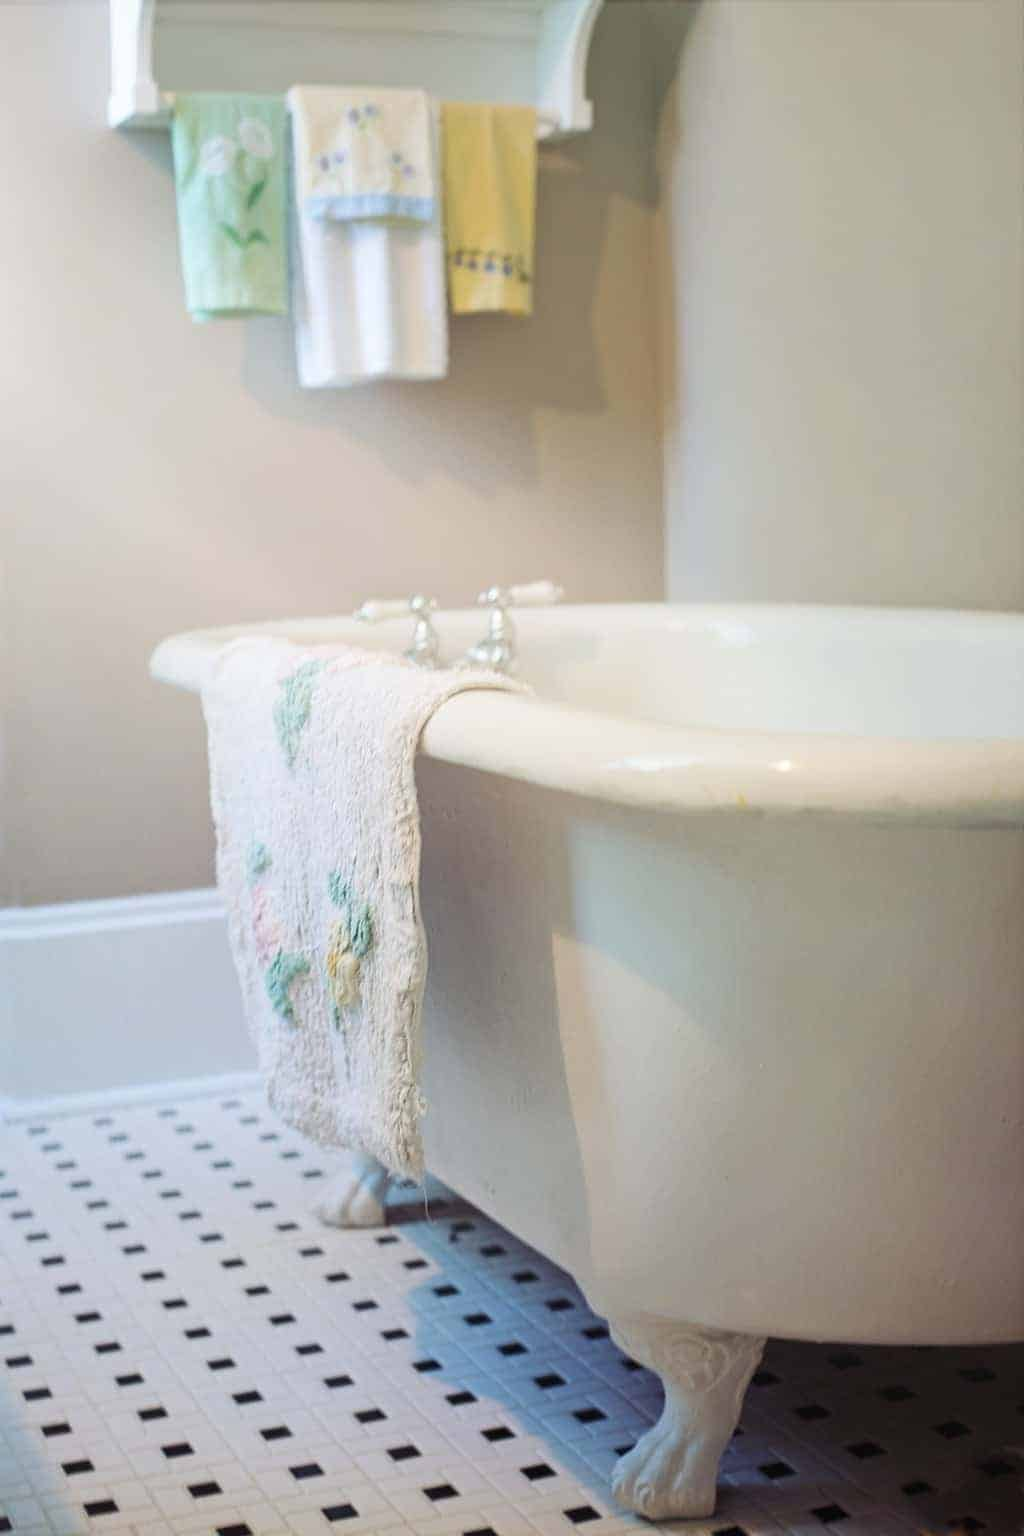 How To Unclog Your Bathtub Drain With Pantry Staples  My